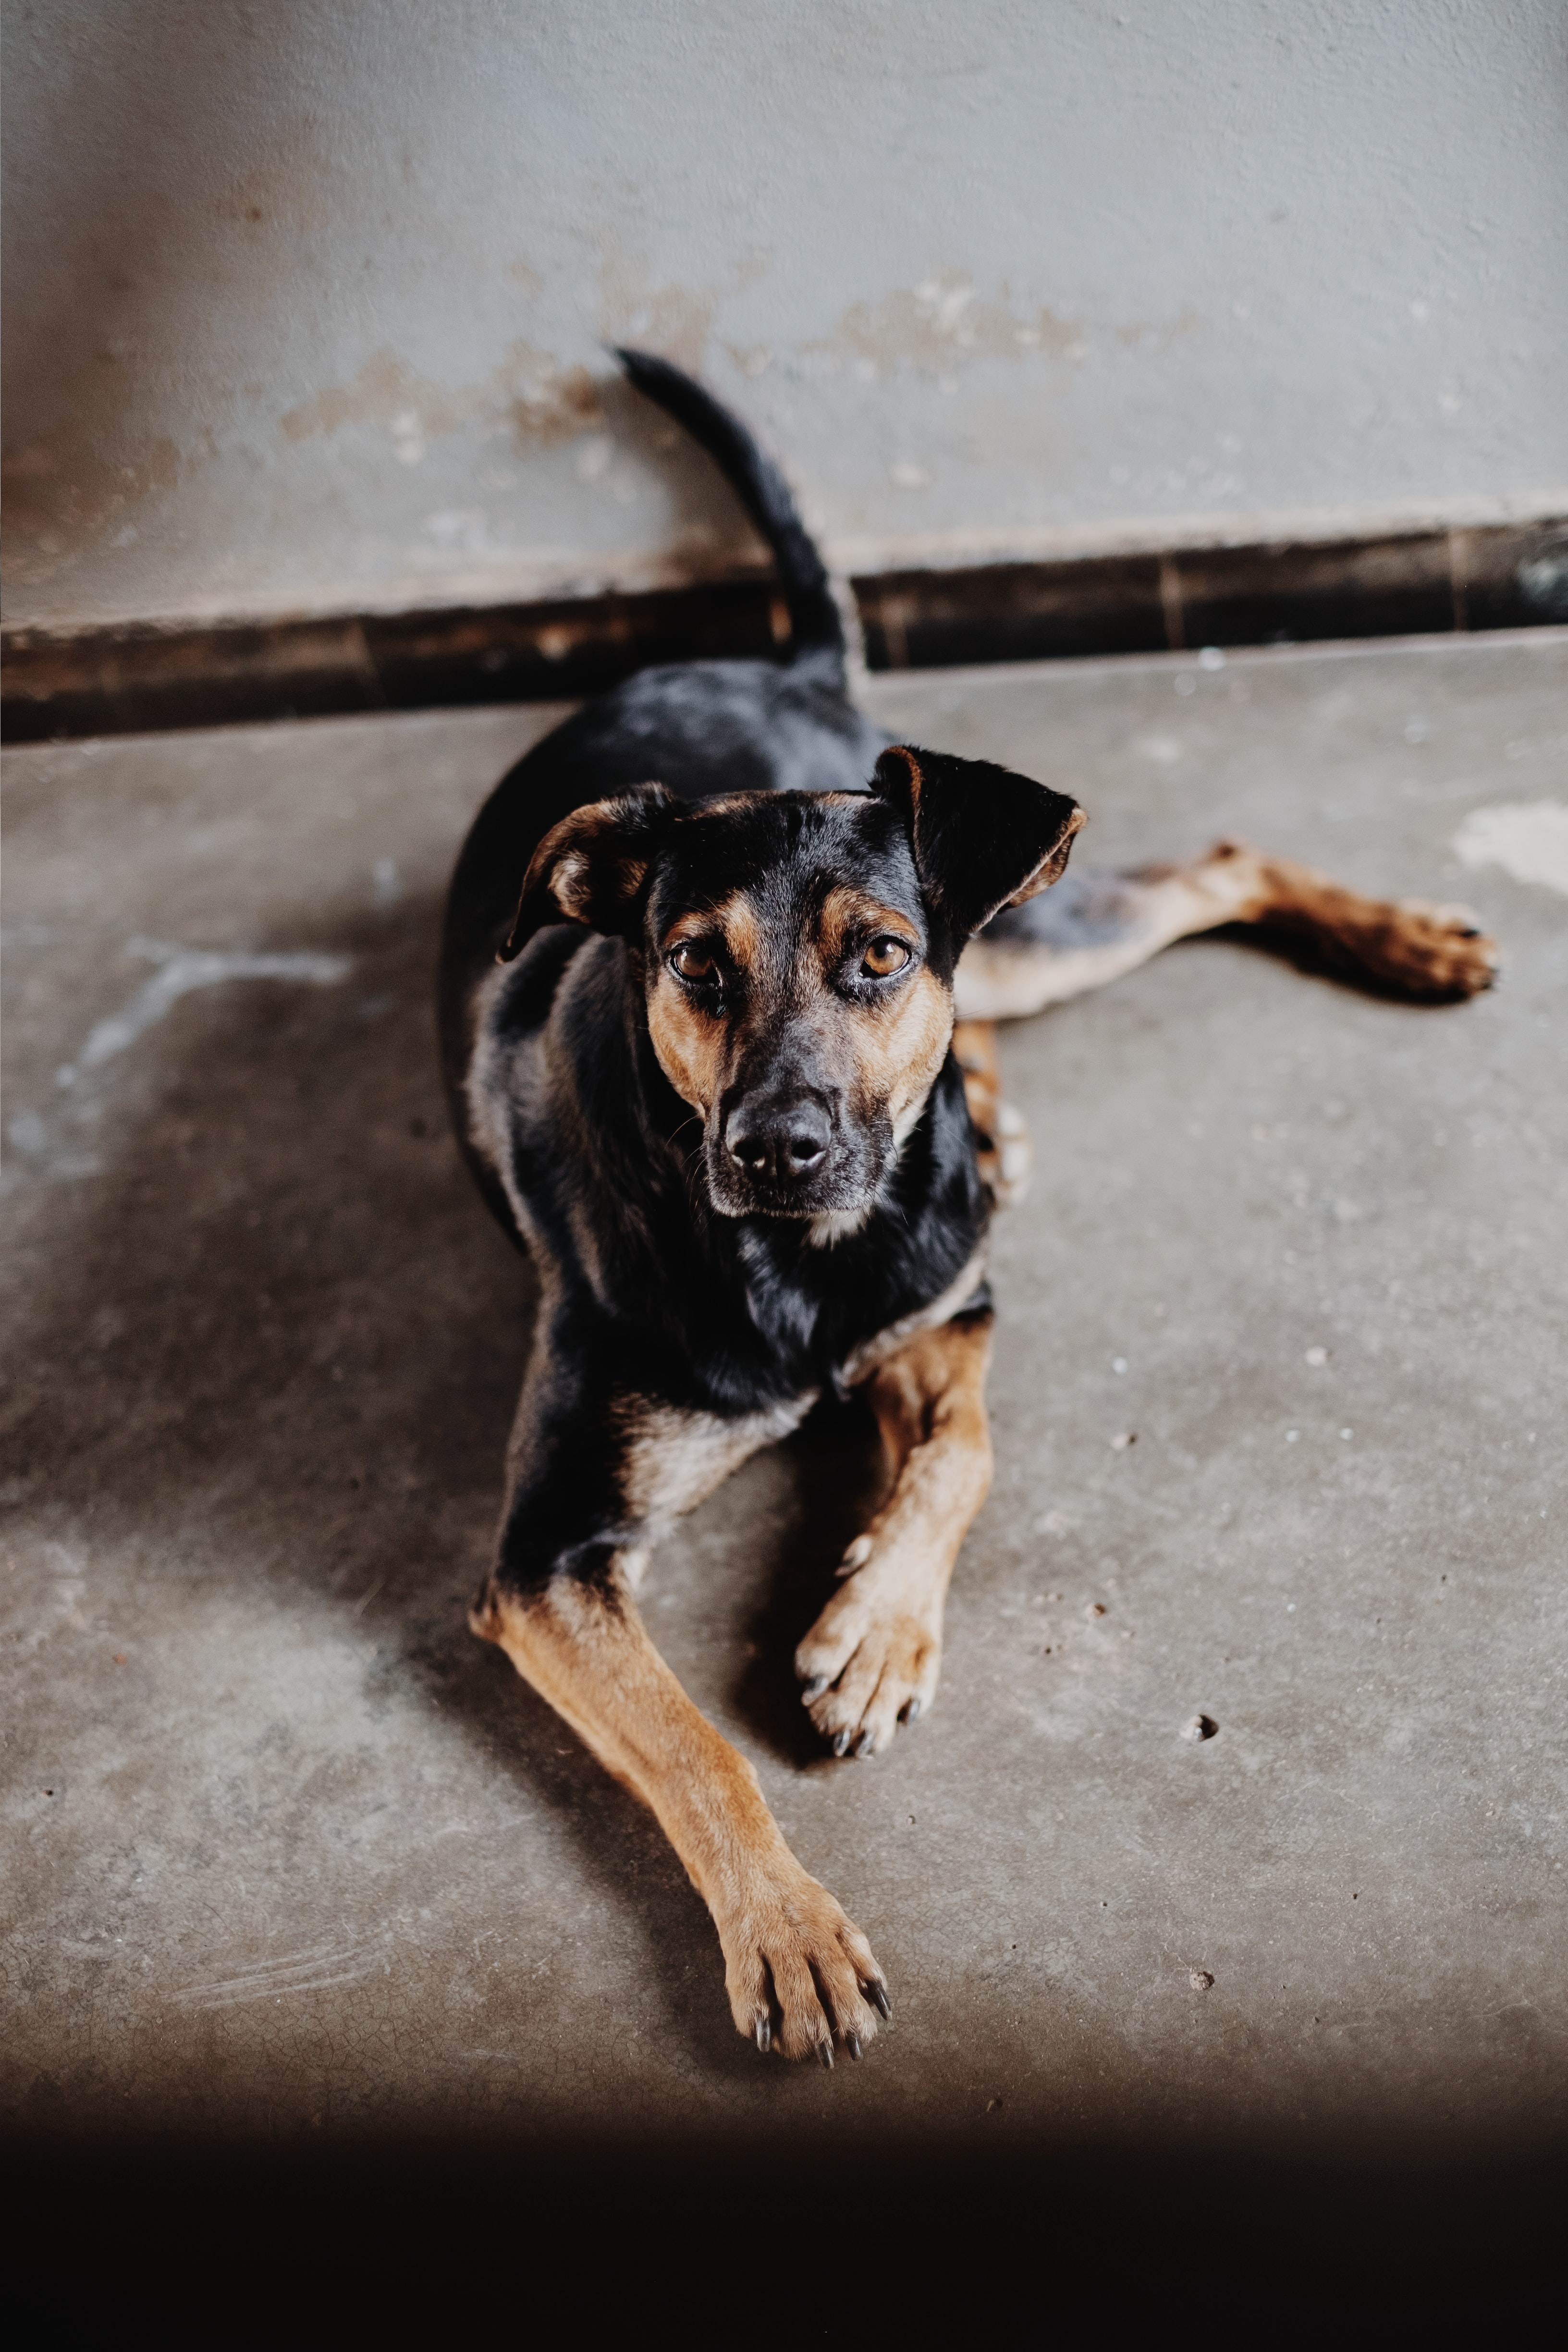 adult black and tan dog on gray surface